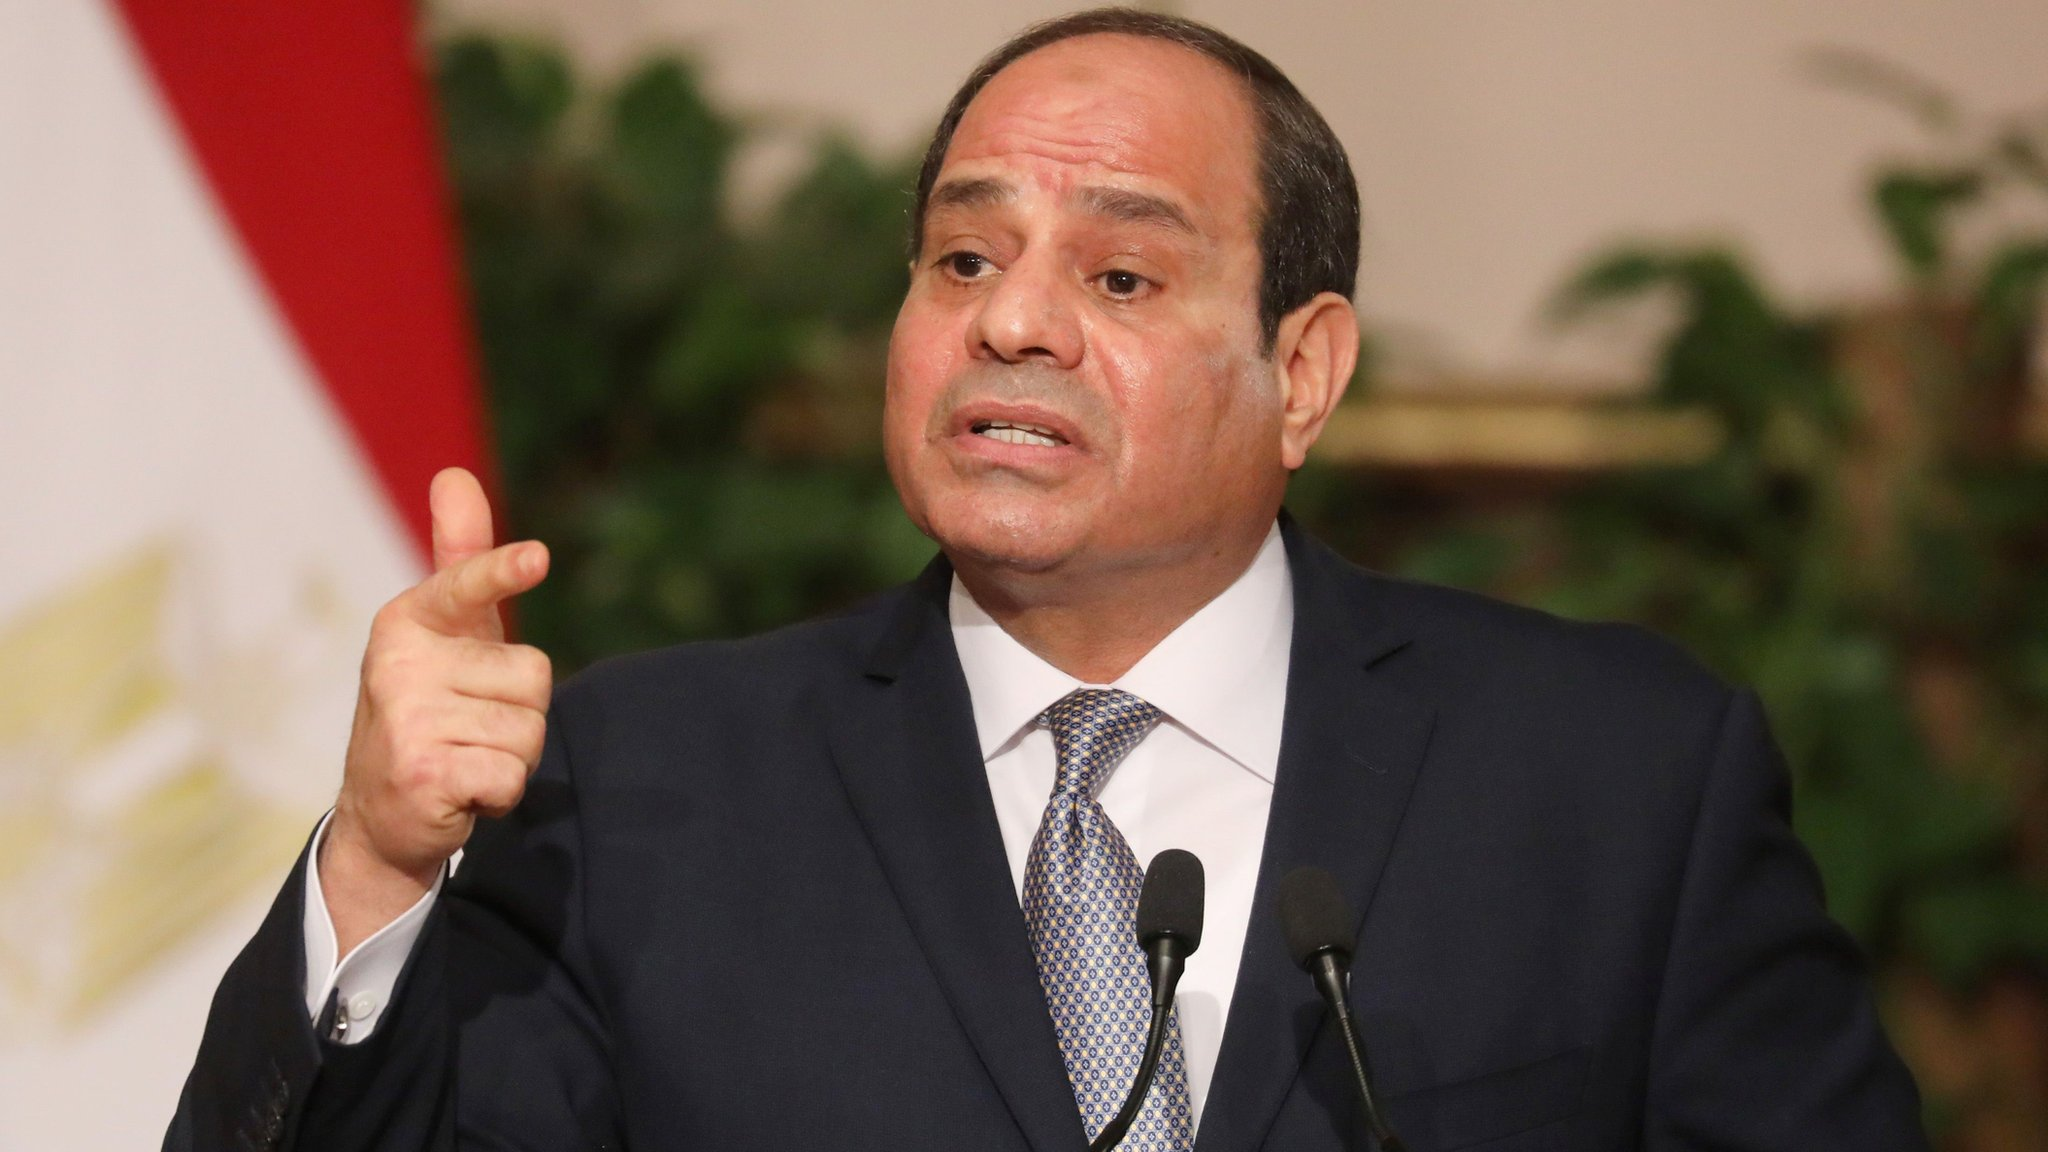 Egypt MPs to vote on extending presidential term limits